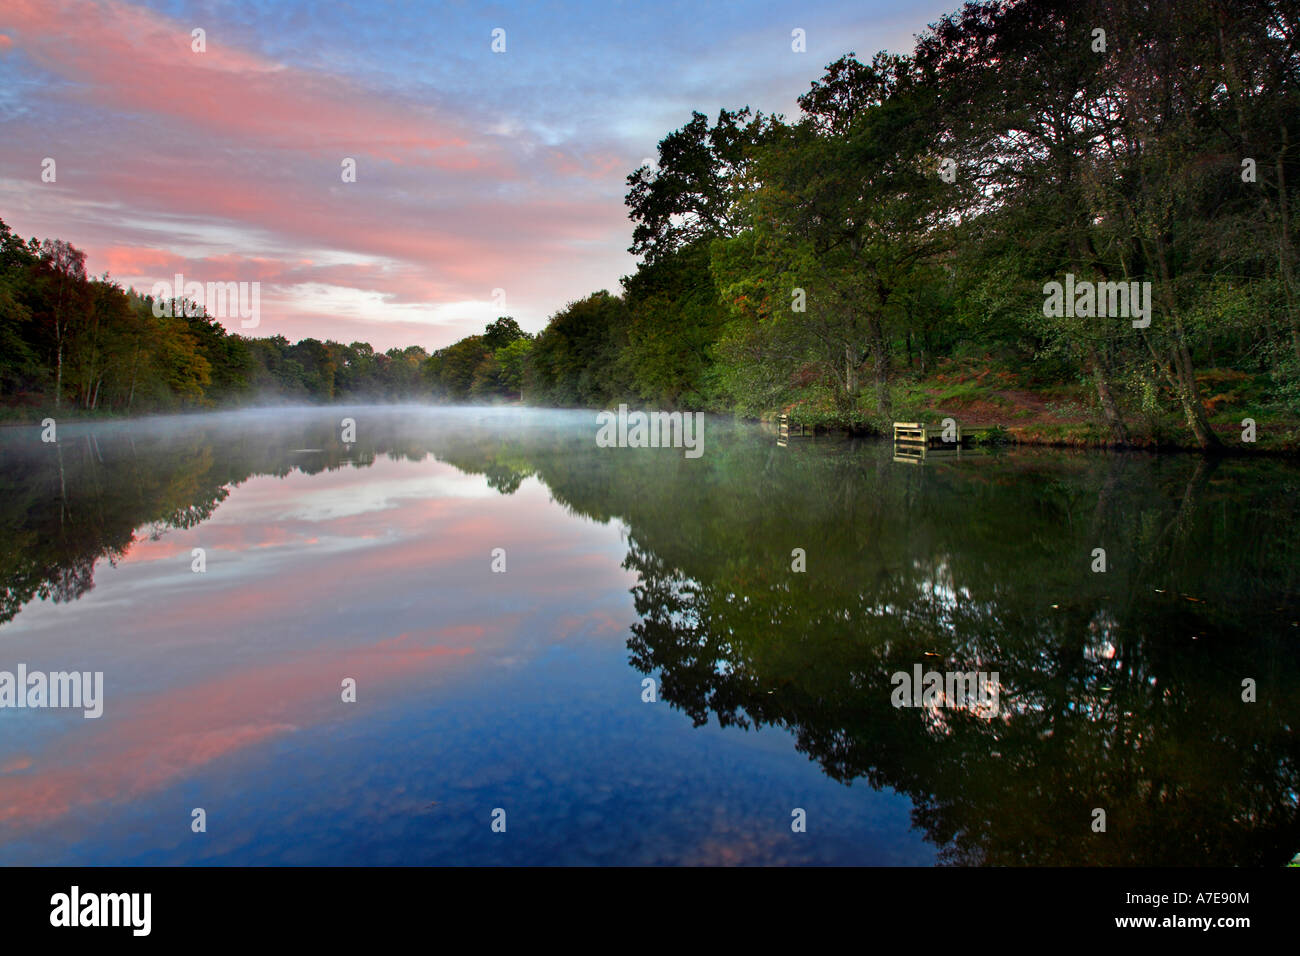 Cannop Pond at dawn Forest of Dean Gloucestershire, England - Stock Image